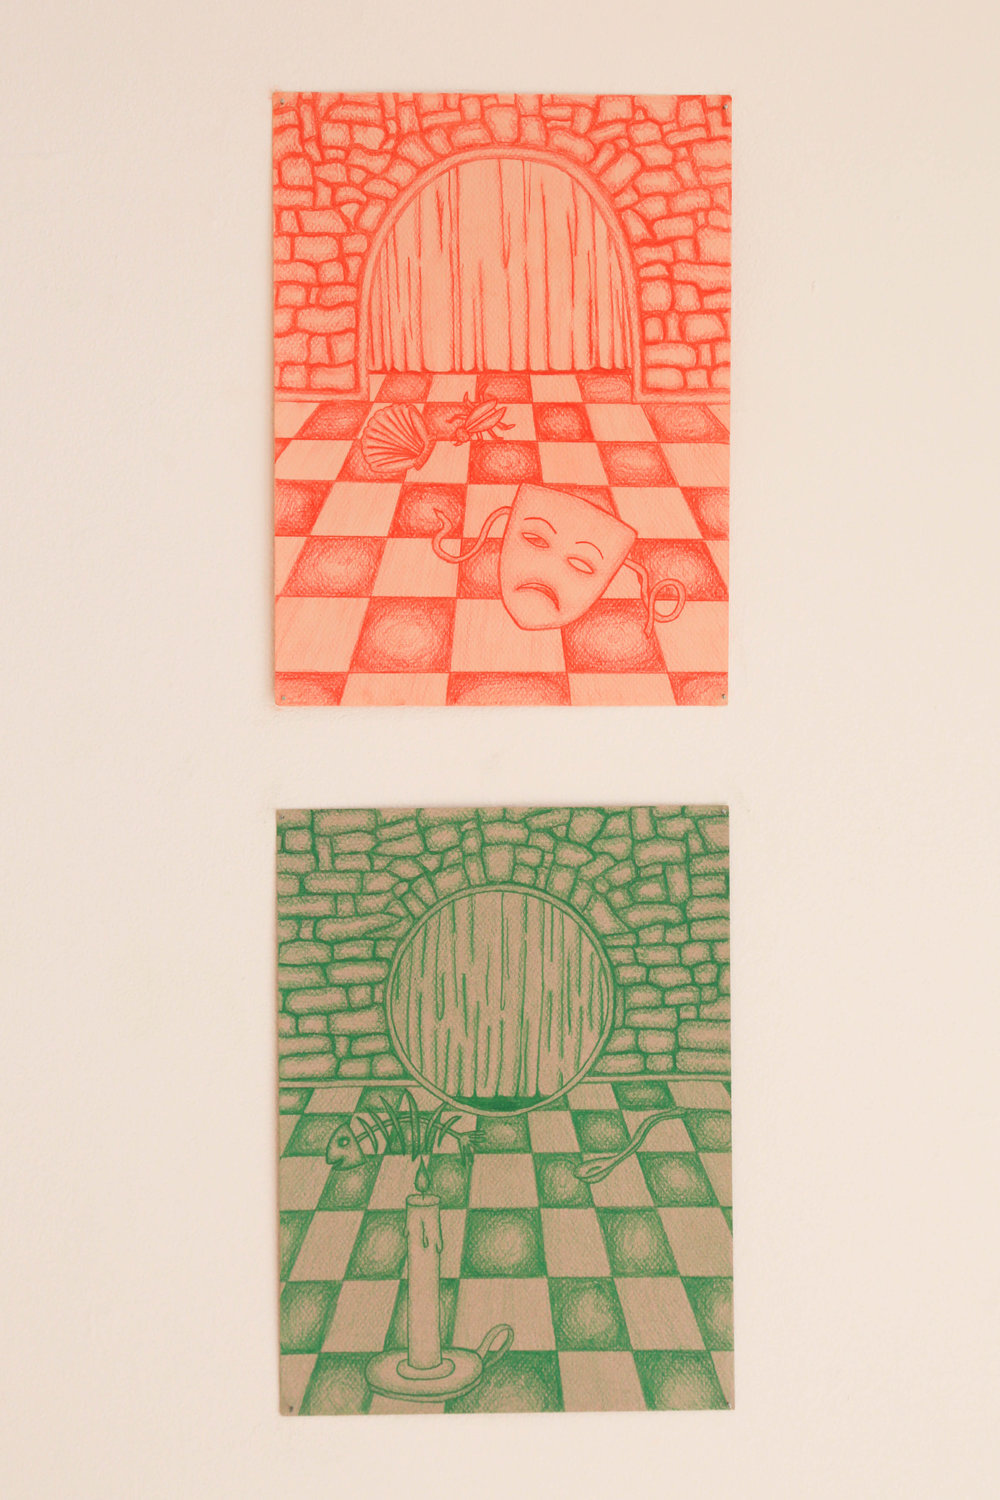 "Game 1 and Game 2 , 2017, 9"" x 12"", Colored Pencil on Paper"